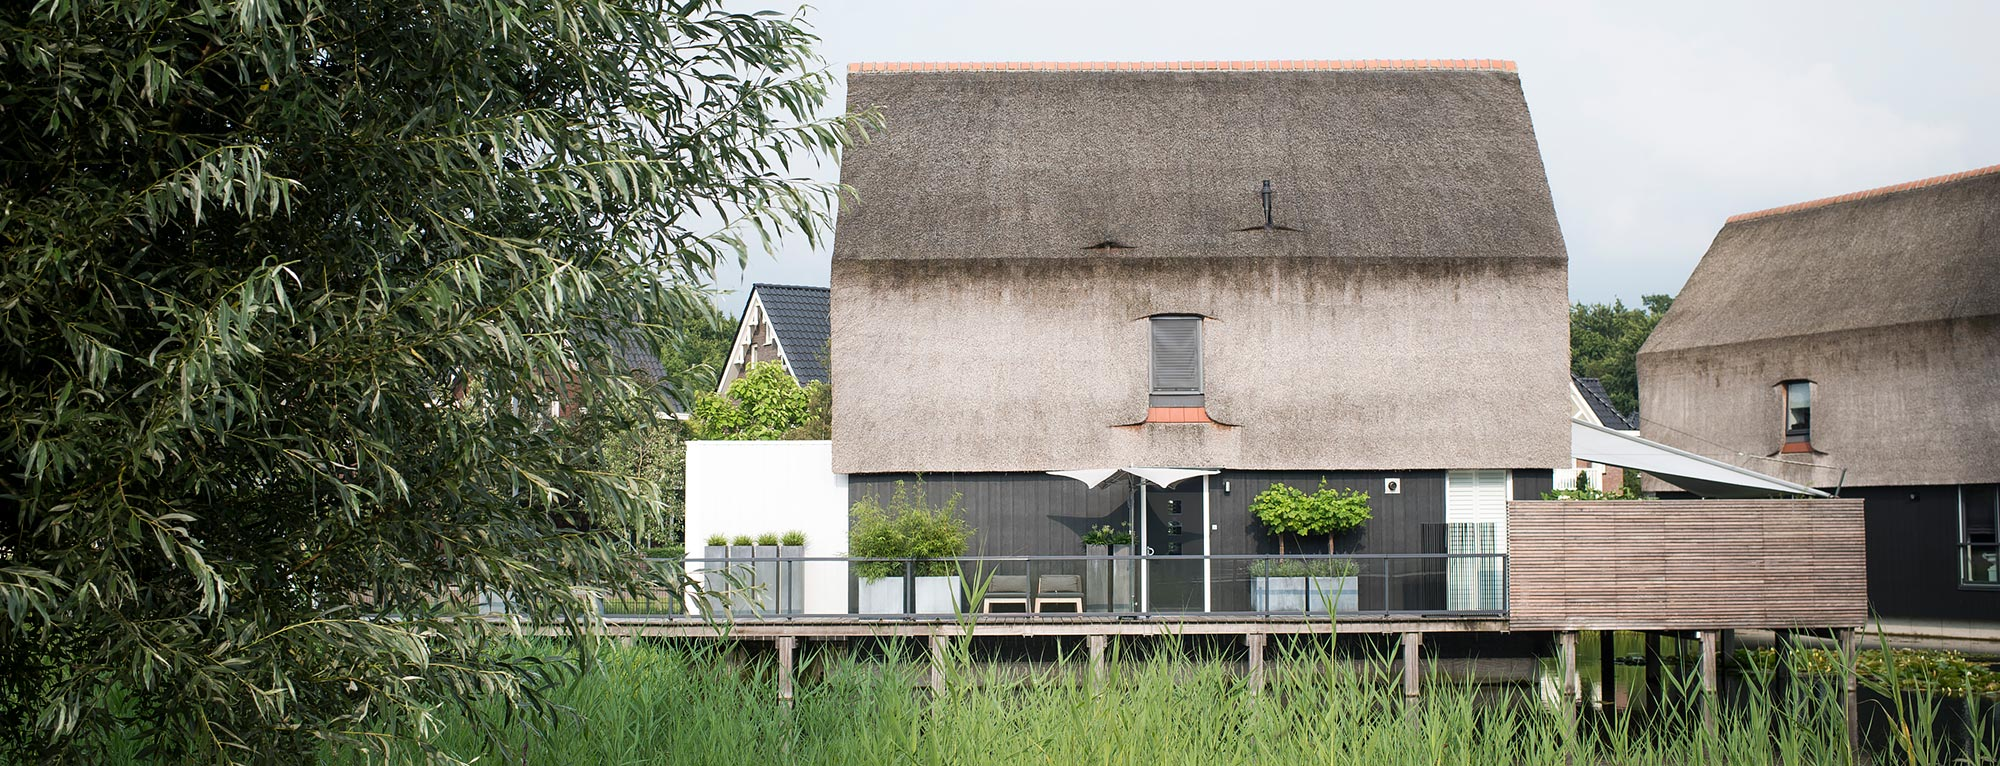 Publicaties over BUITENGEWOON – 	Woonstijl | Home and Garden | Tuinontwerp | Landleven | Tuin en Landschap | Talkies Magazine | Chic Gardens